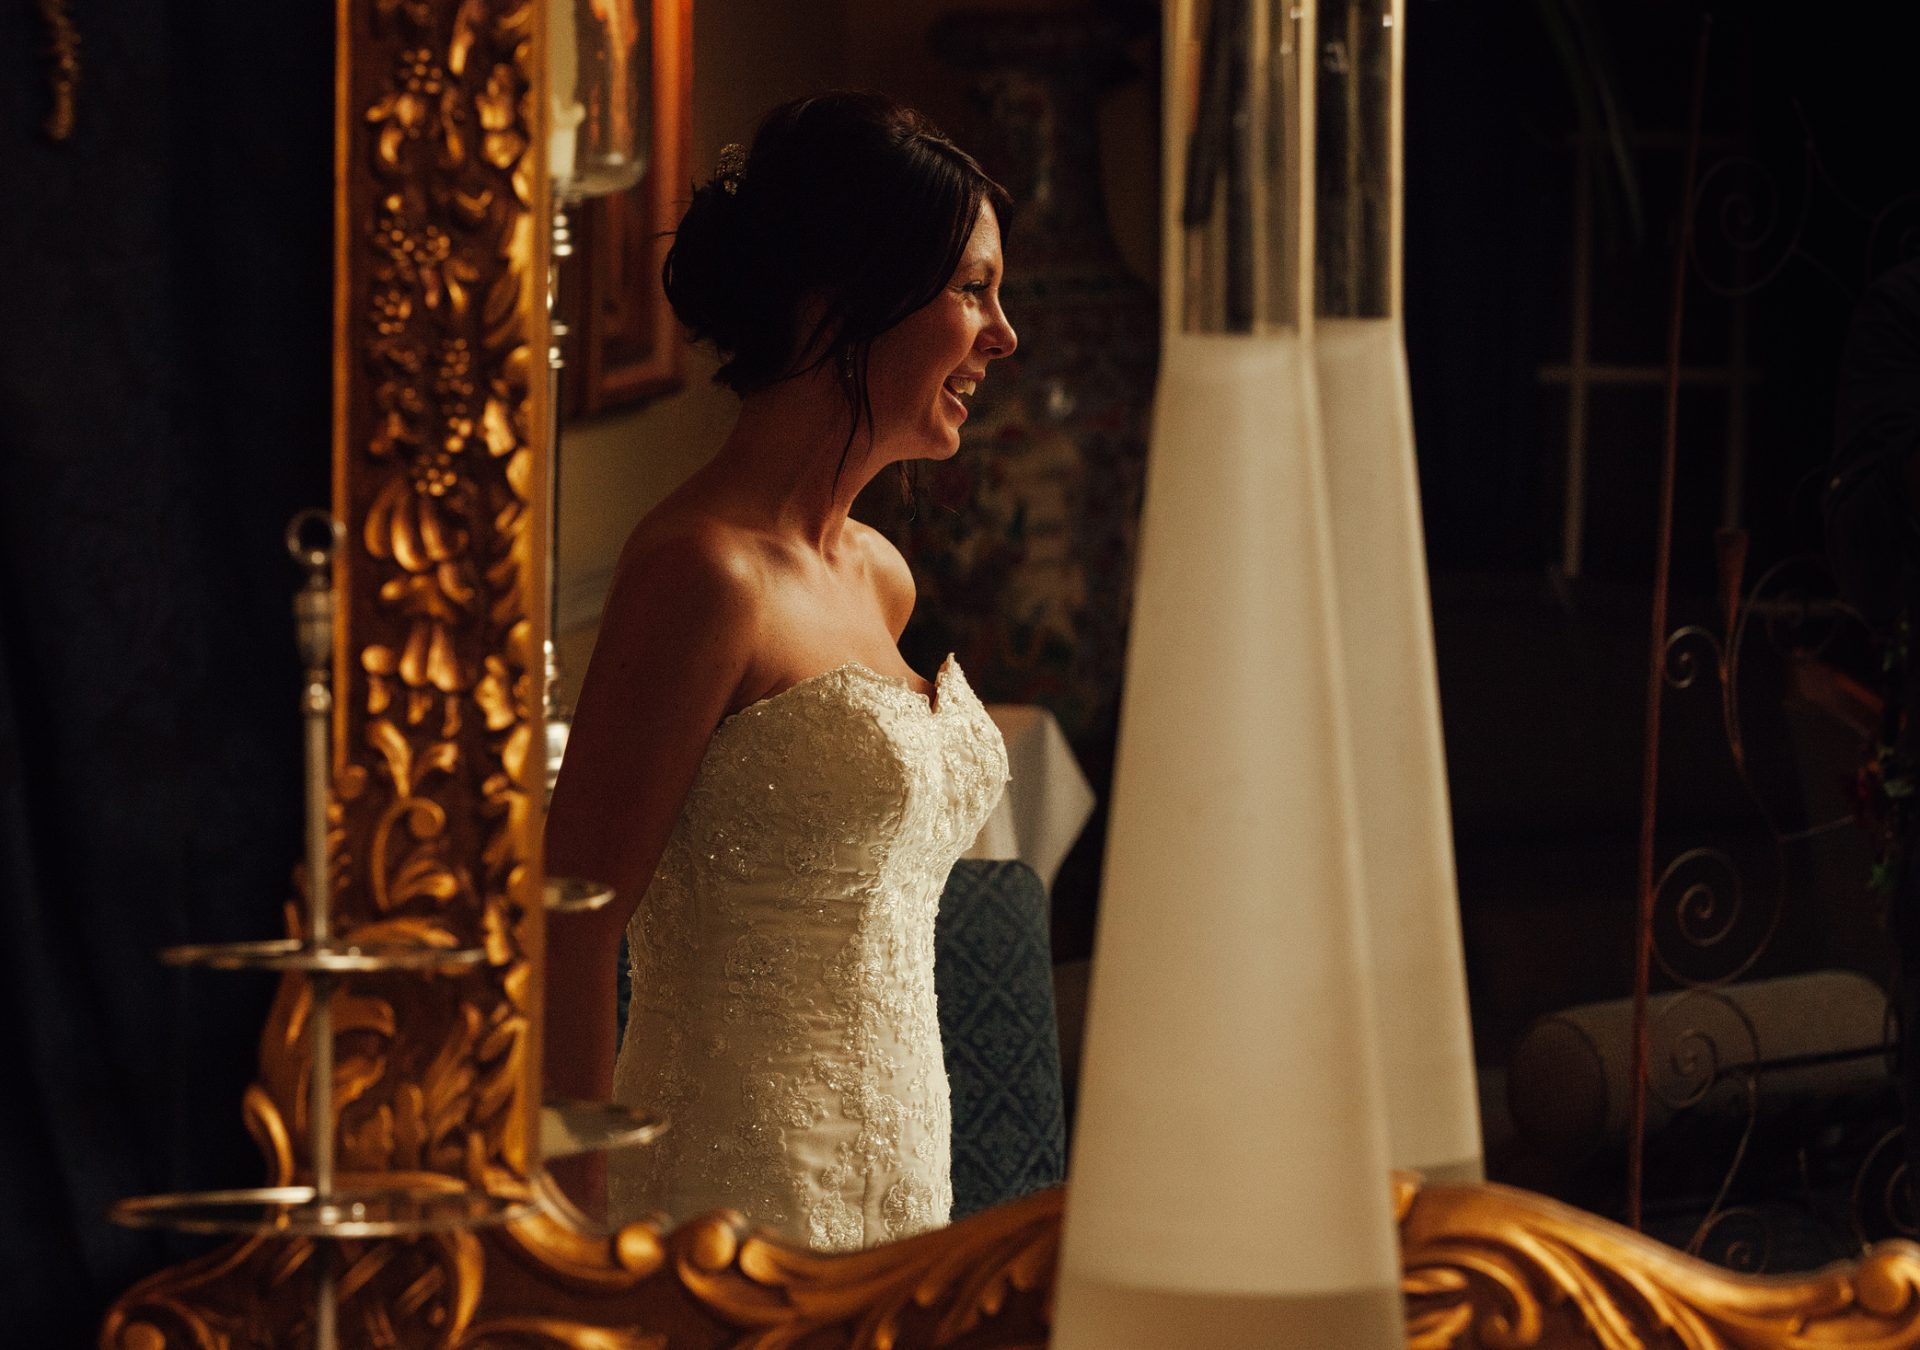 Bride in mirror with warm light